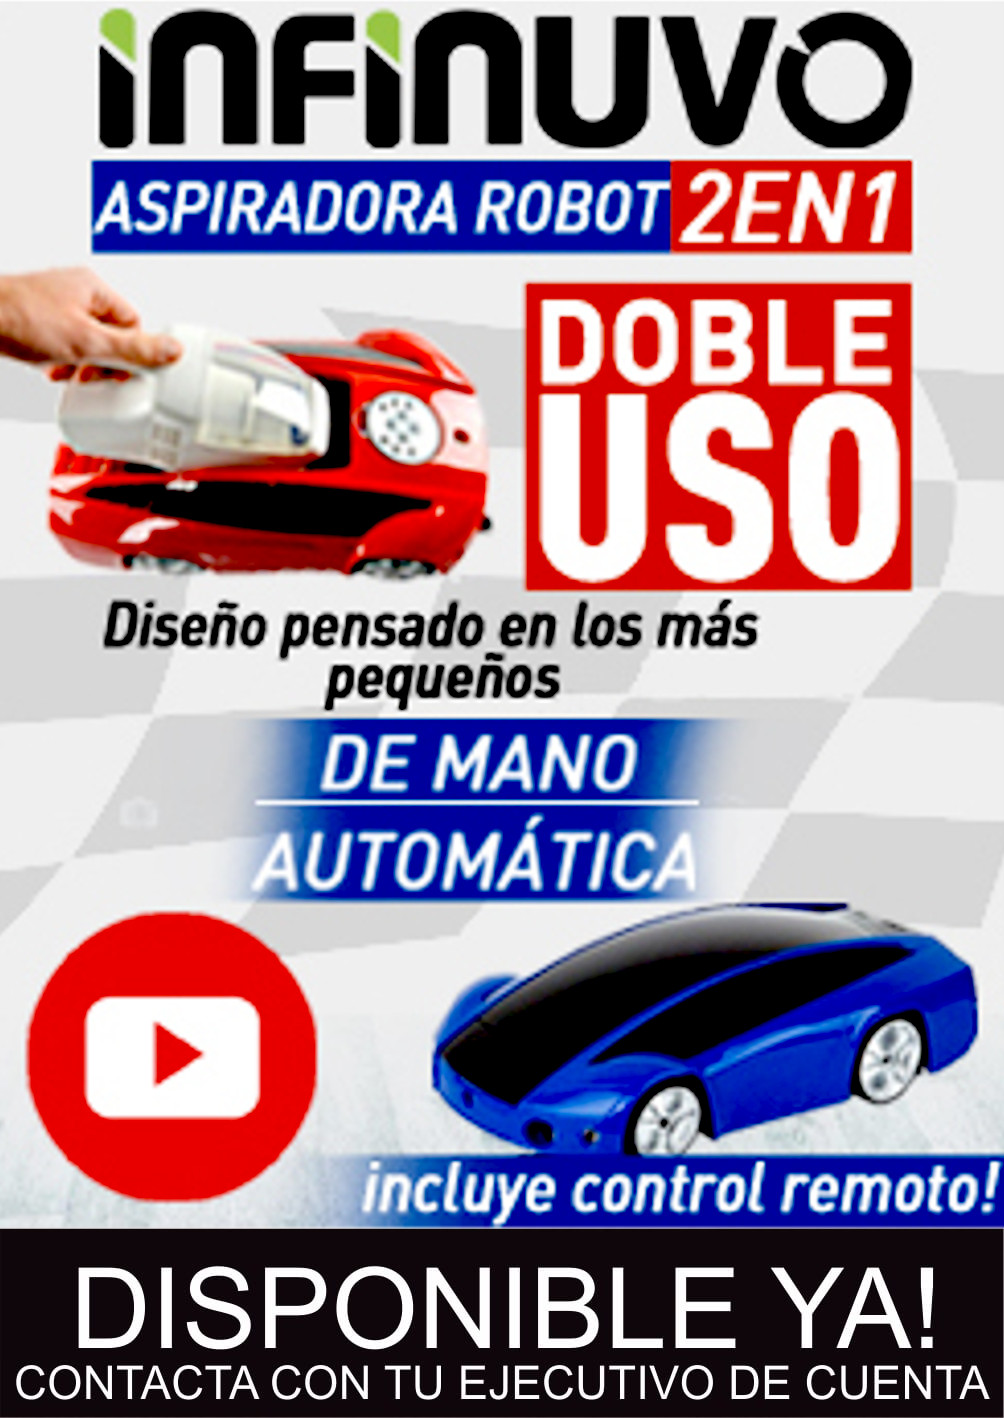 QQ4-BANNER LATERAL